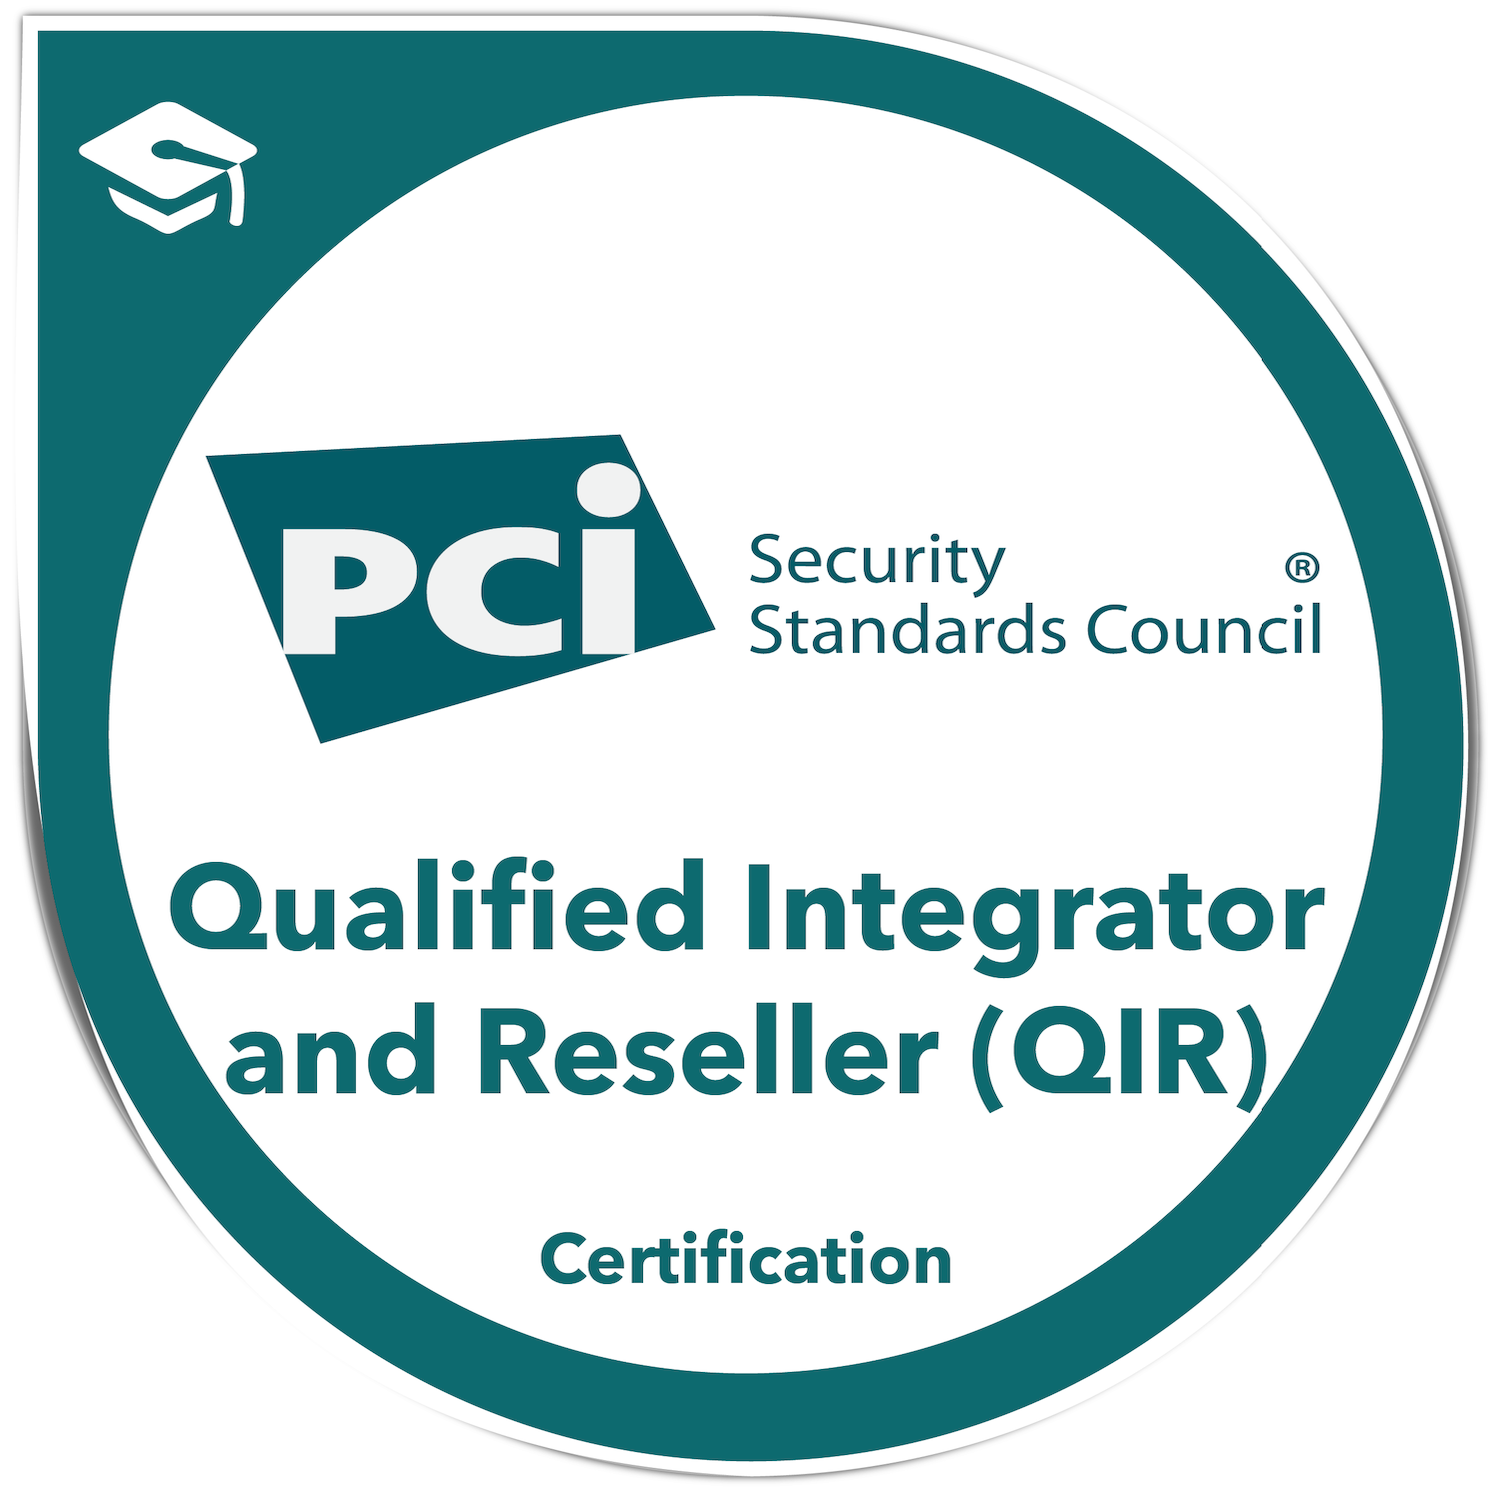 PCI Qualified Integrator and Reseller (QIR)